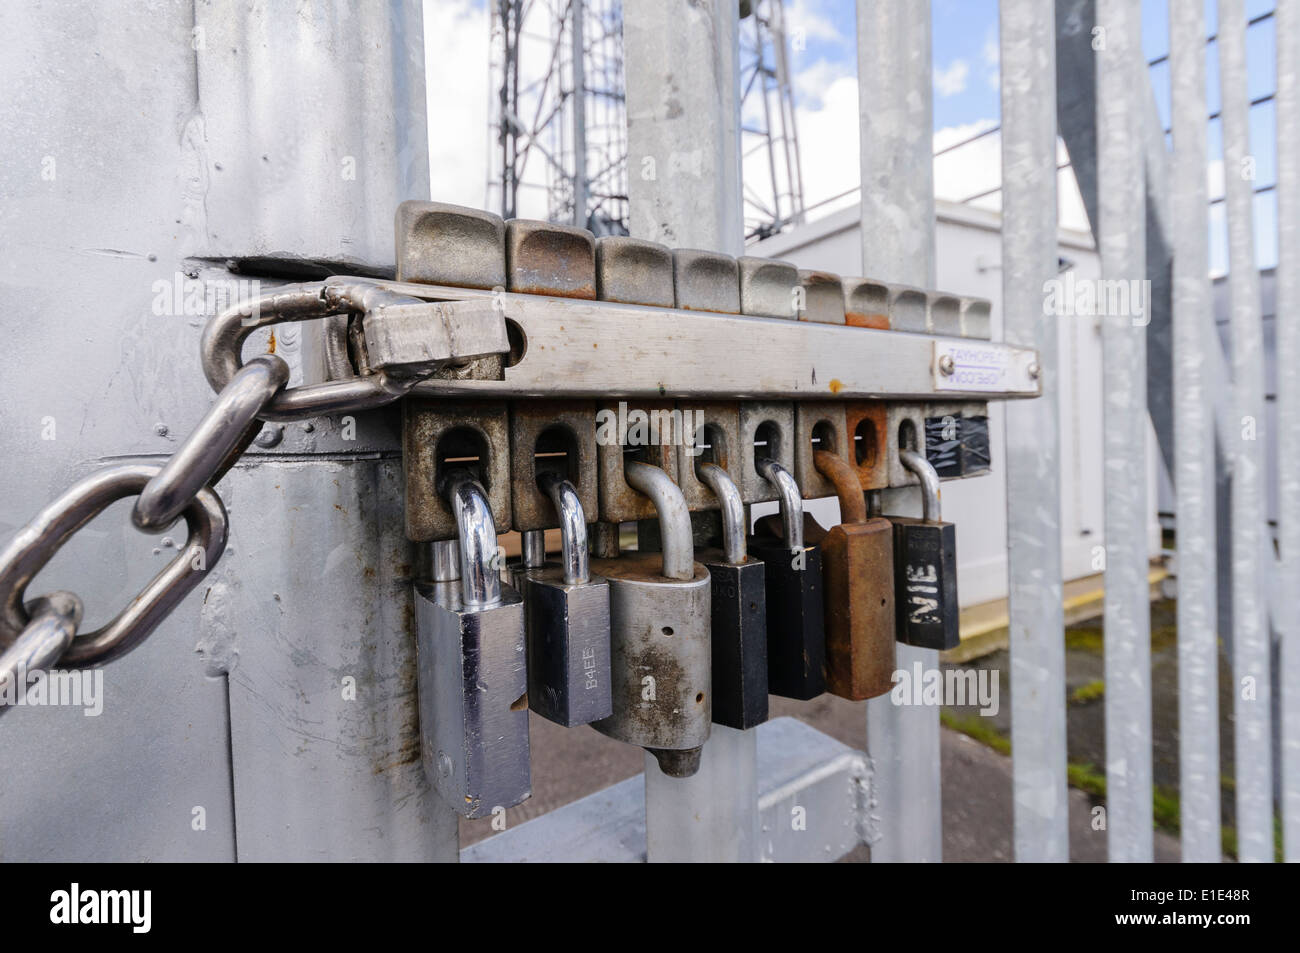 Multiple locks on a security gate. The removal of any one lock allows the gate to be opened. - Stock Image